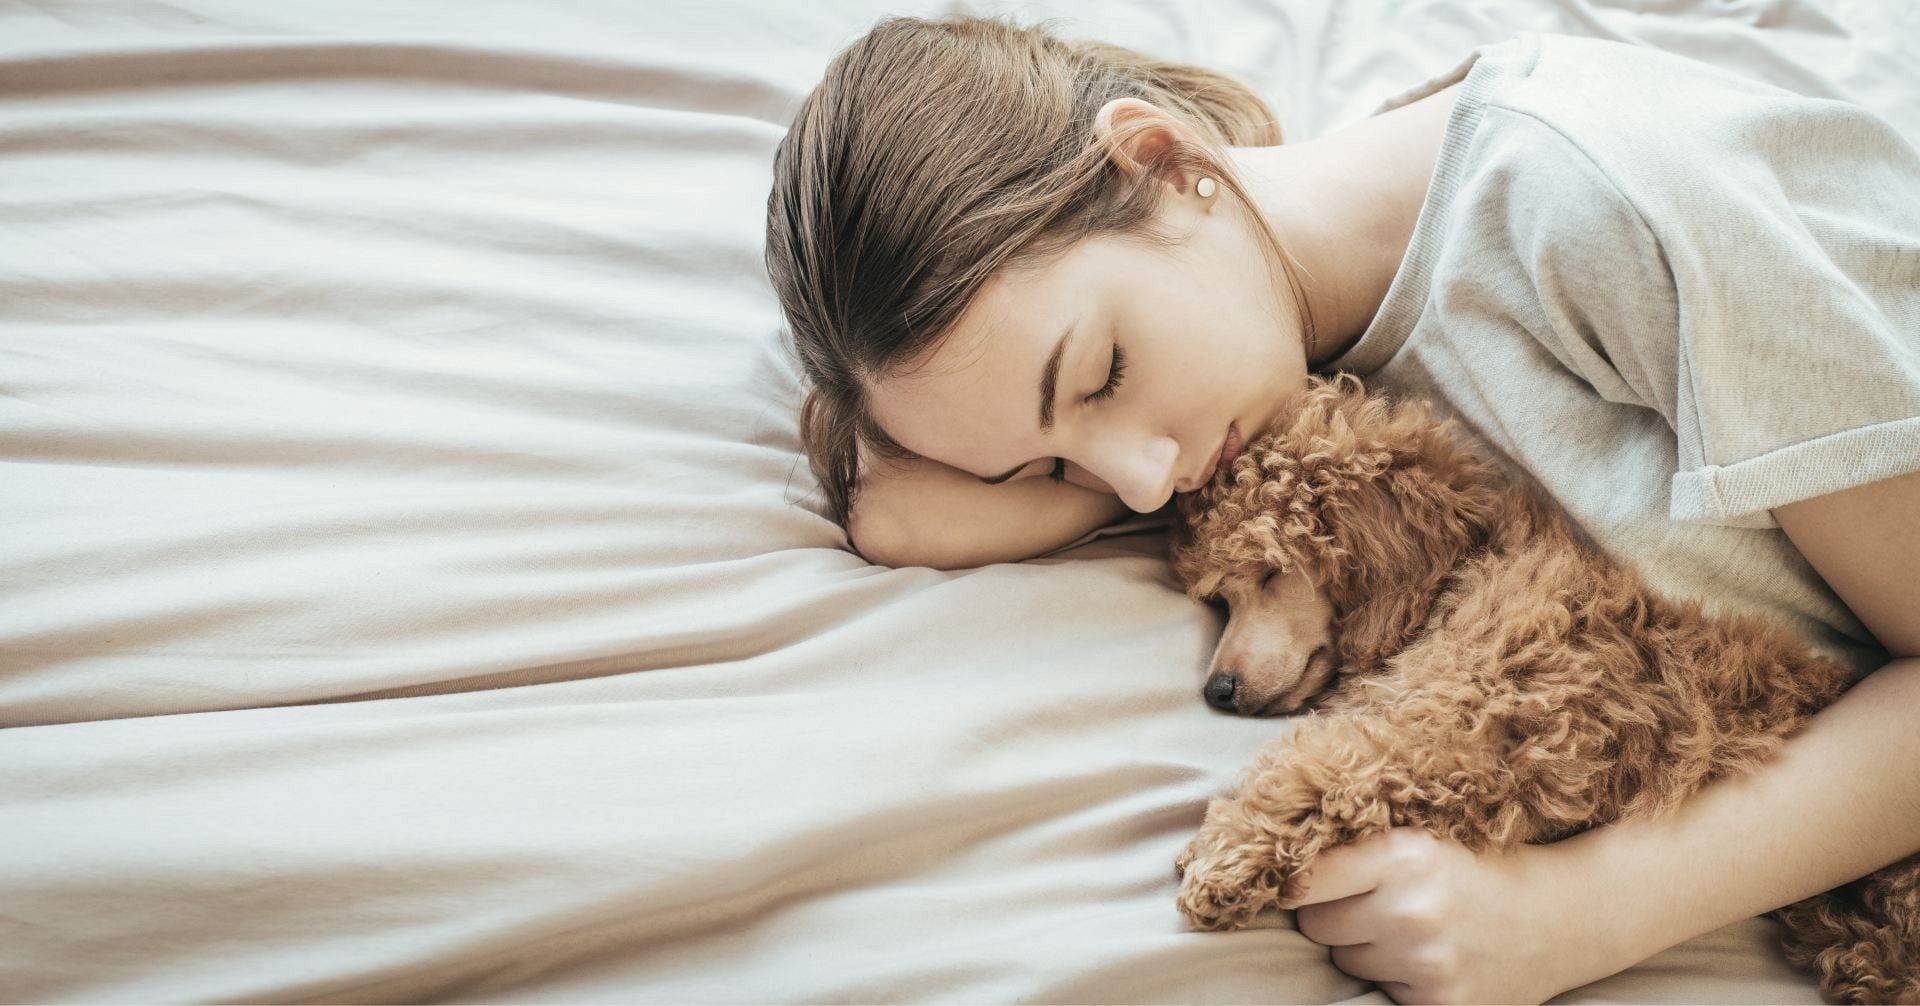 woman sleeping whilst holding a puppy between her arms.